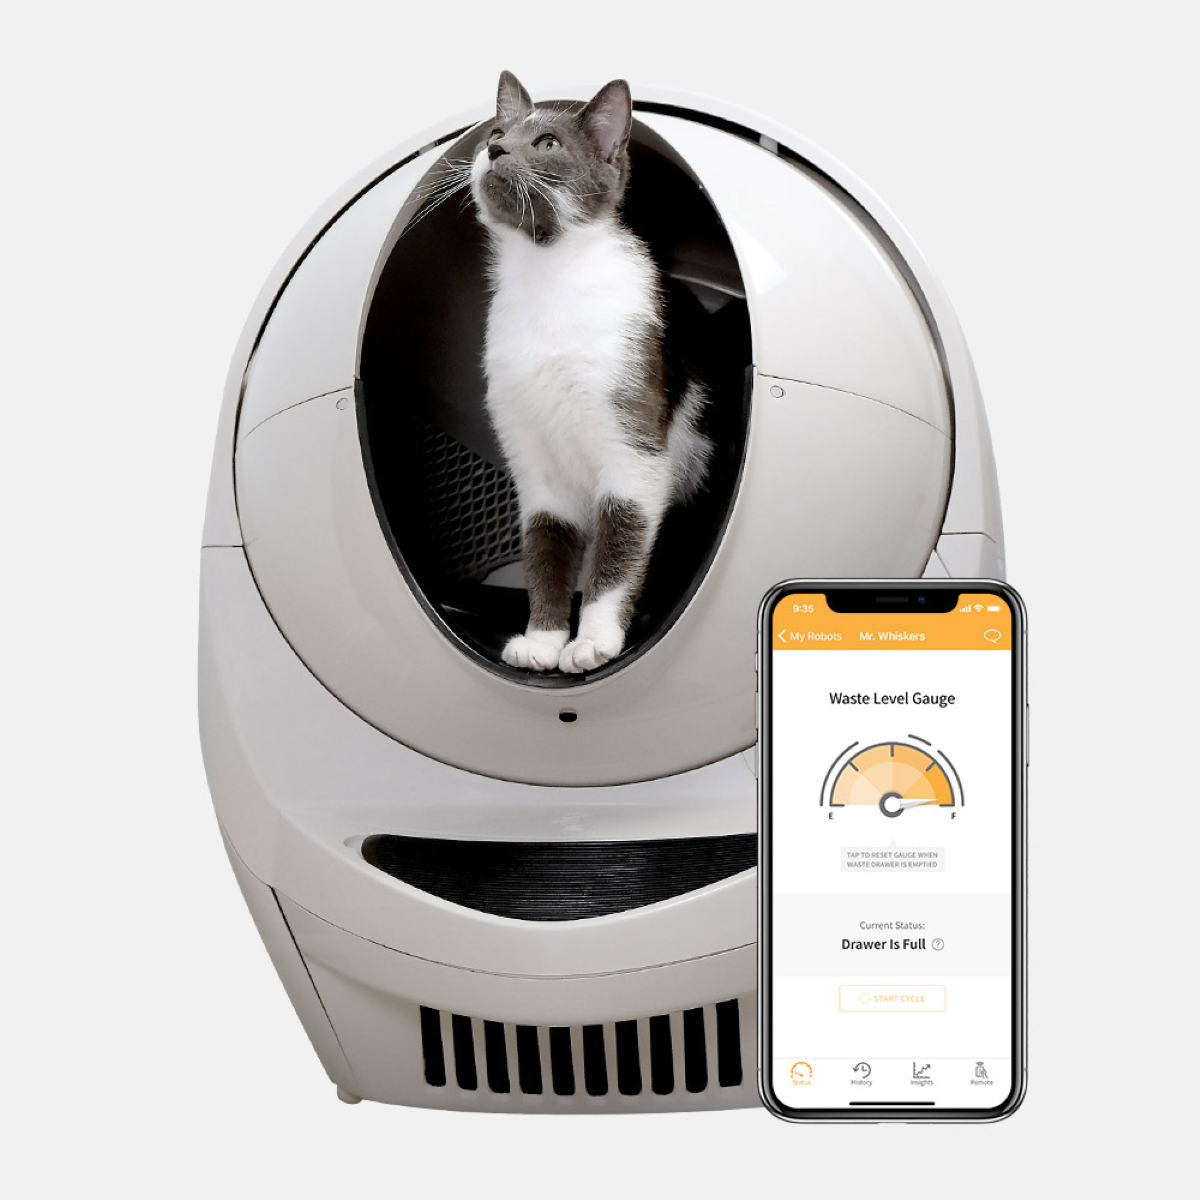 Litter-Robot 3 Connect - Drawer Full Indication